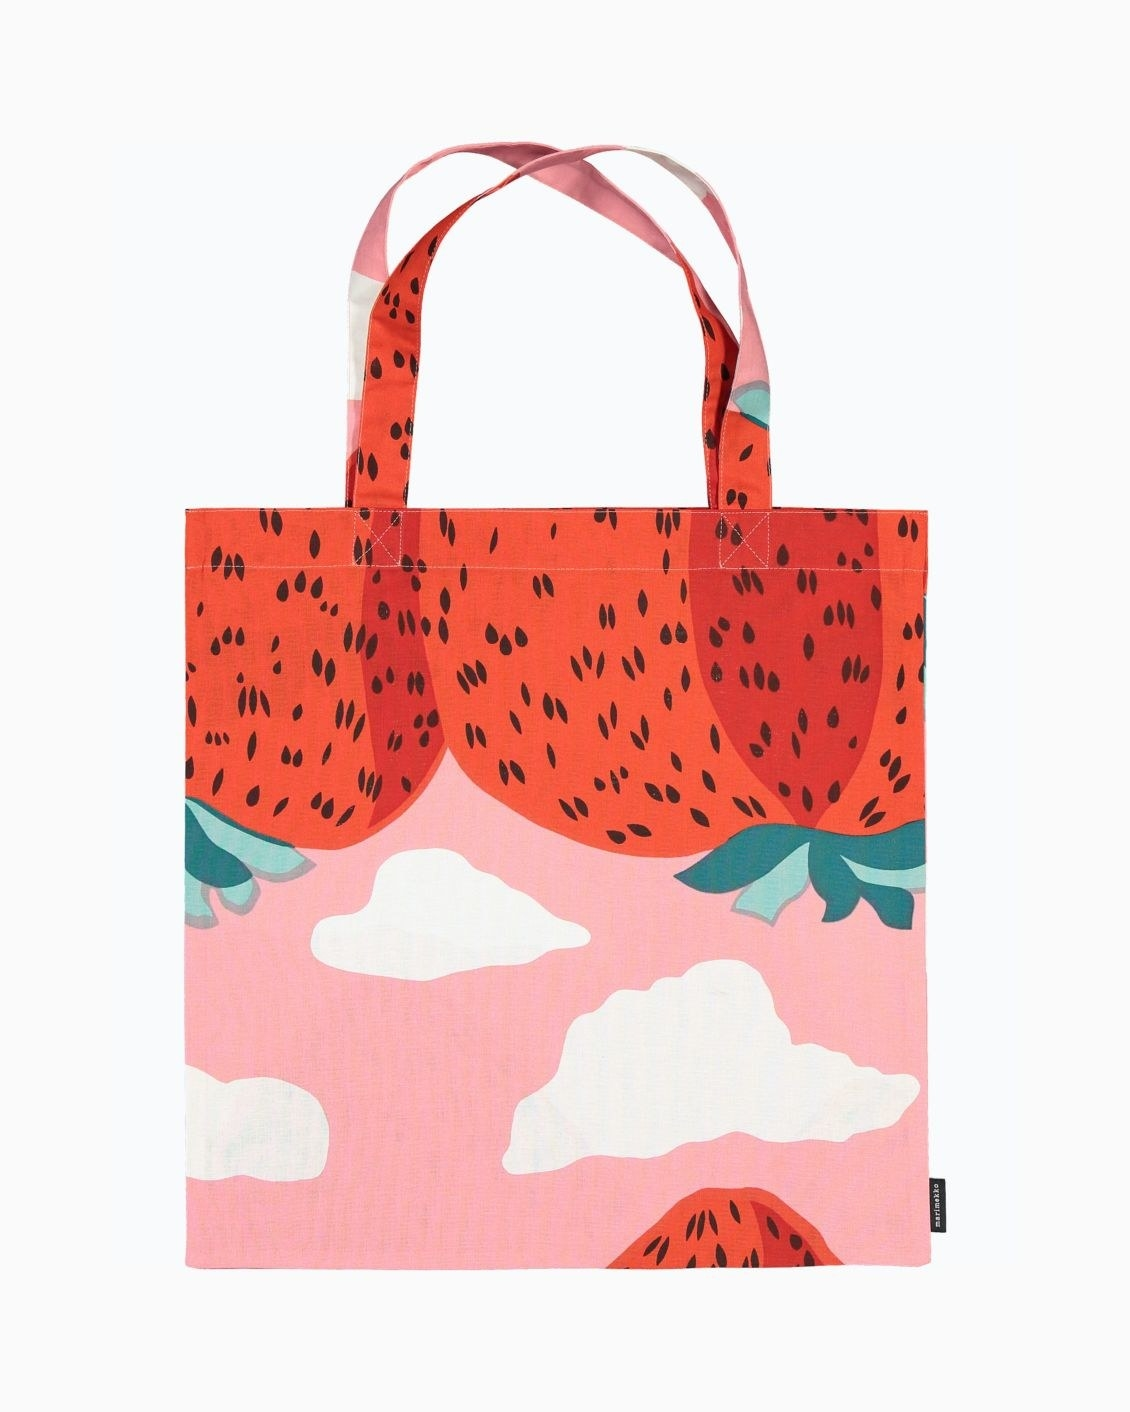 tote bag with strawberry mountain design and a pink sky with clouds